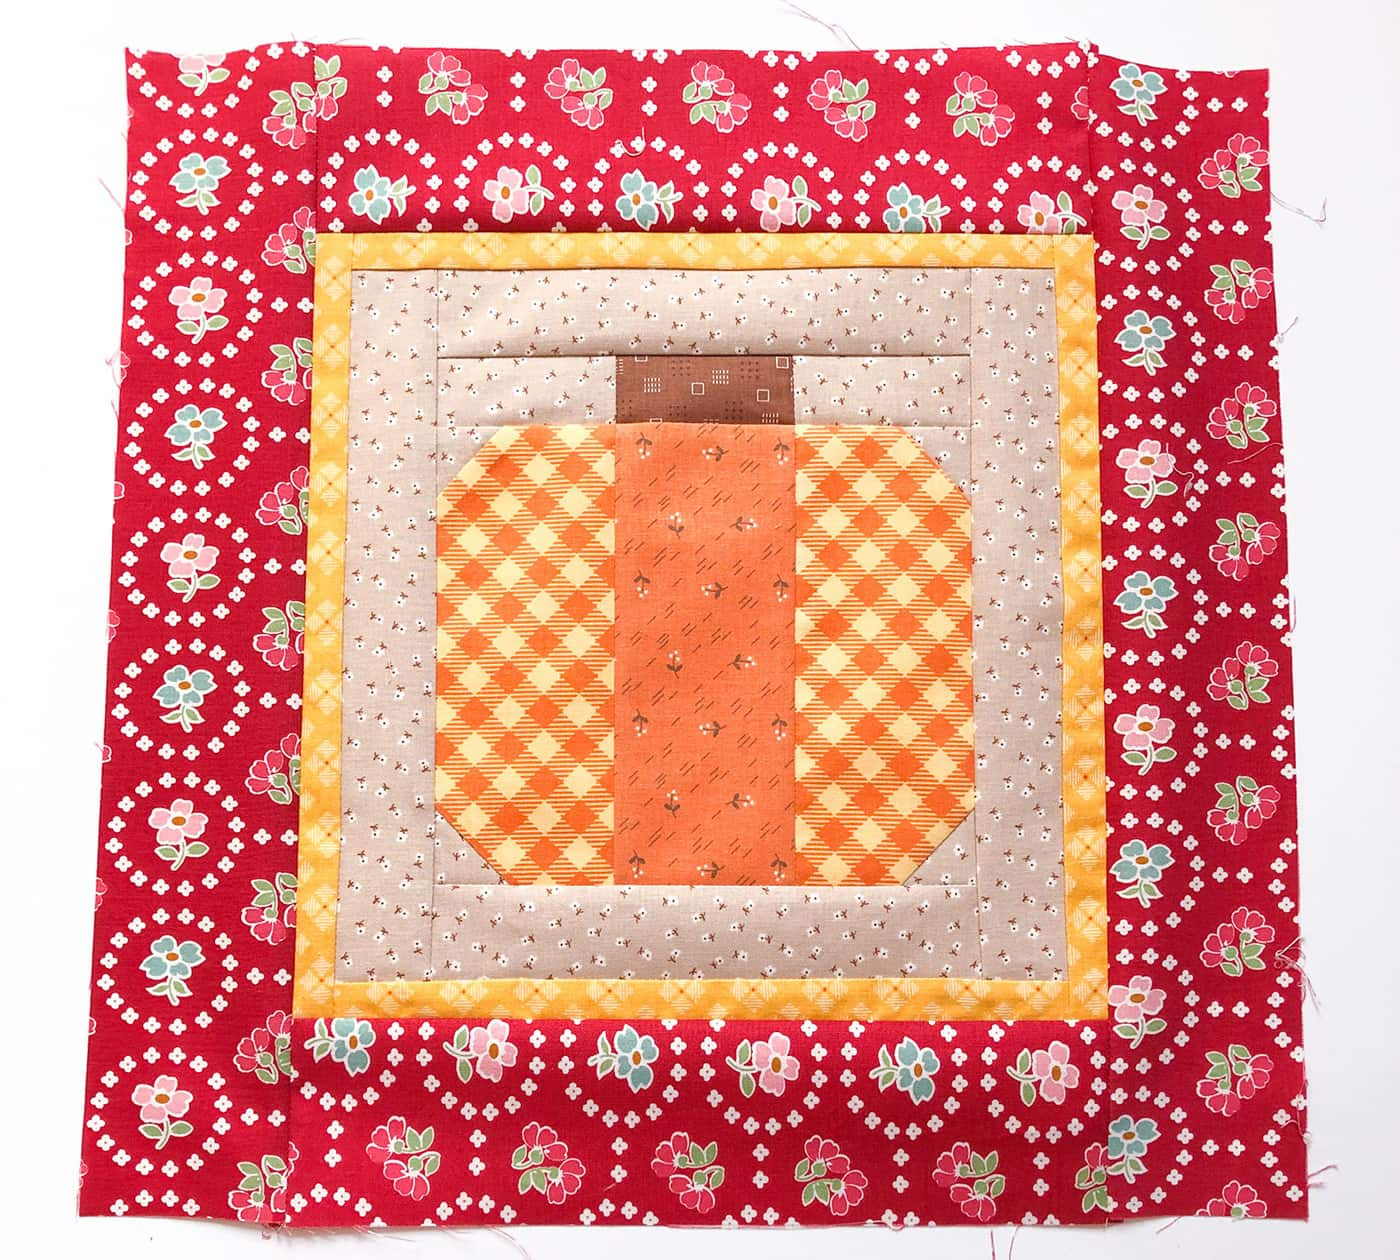 Pumpkin pillow assembly steps on white background